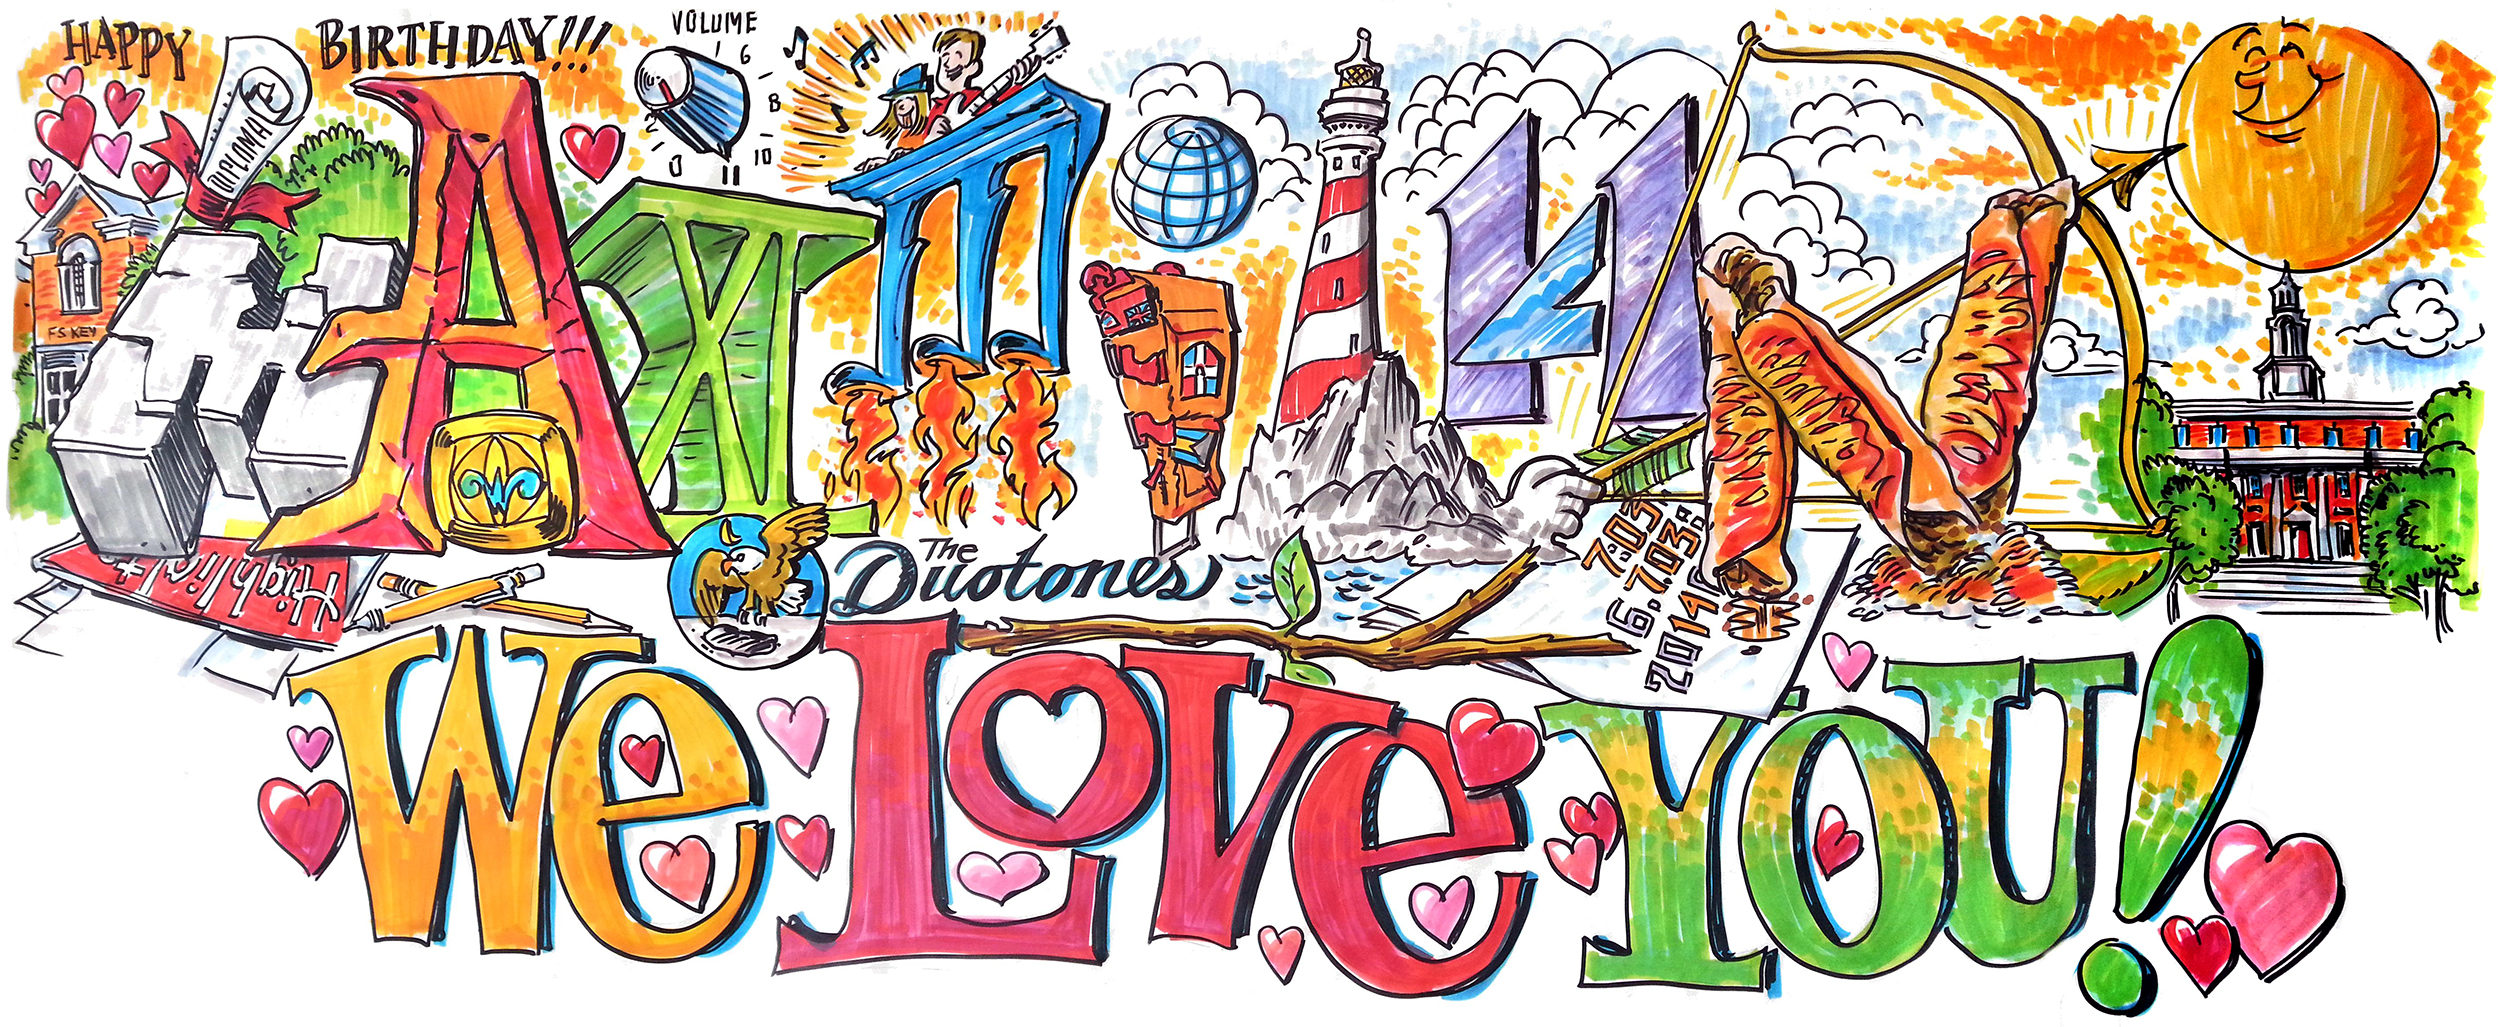 Graphic Recording - Private Event: Commemorating a birthday - 4' x 9.75'